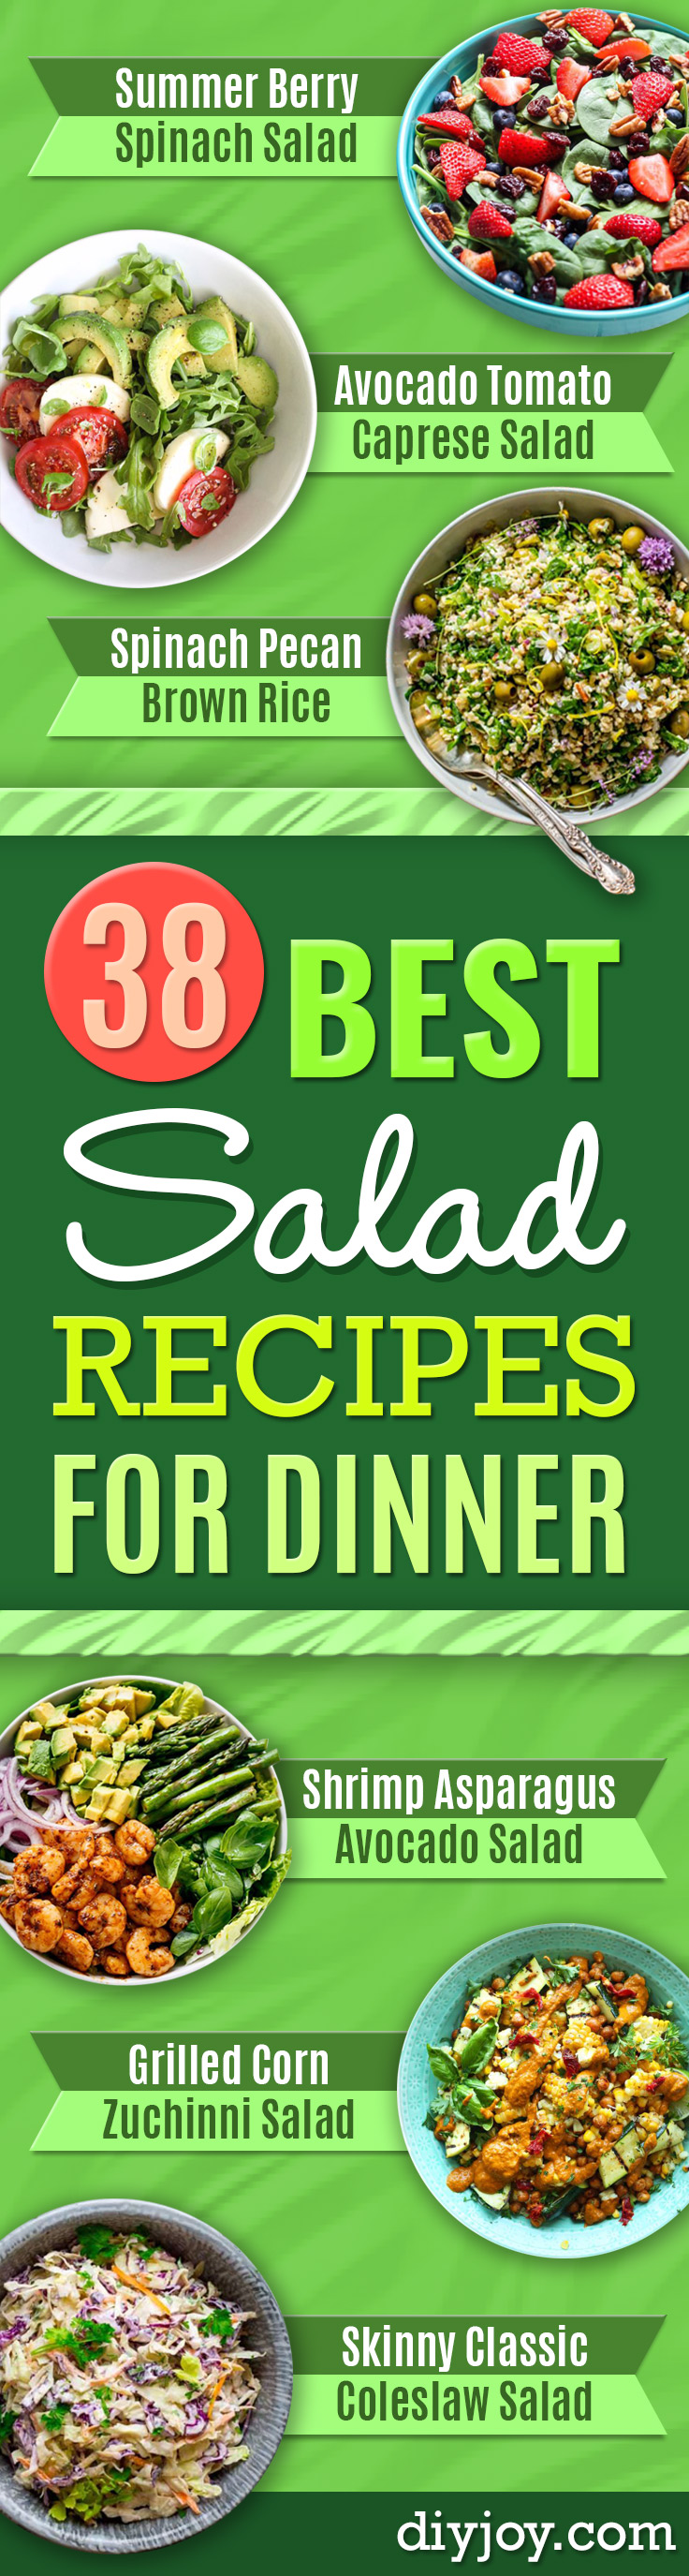 Dinner Salad Recipes - Easy Salads to Make for Quick and Healthy Dinners - Healthy Chicken, Egg, Vegetarian, Steak and Shrimp Salad Ideas - Summer Side Dishes, Hearty Filling Meals, and Low Carb Options